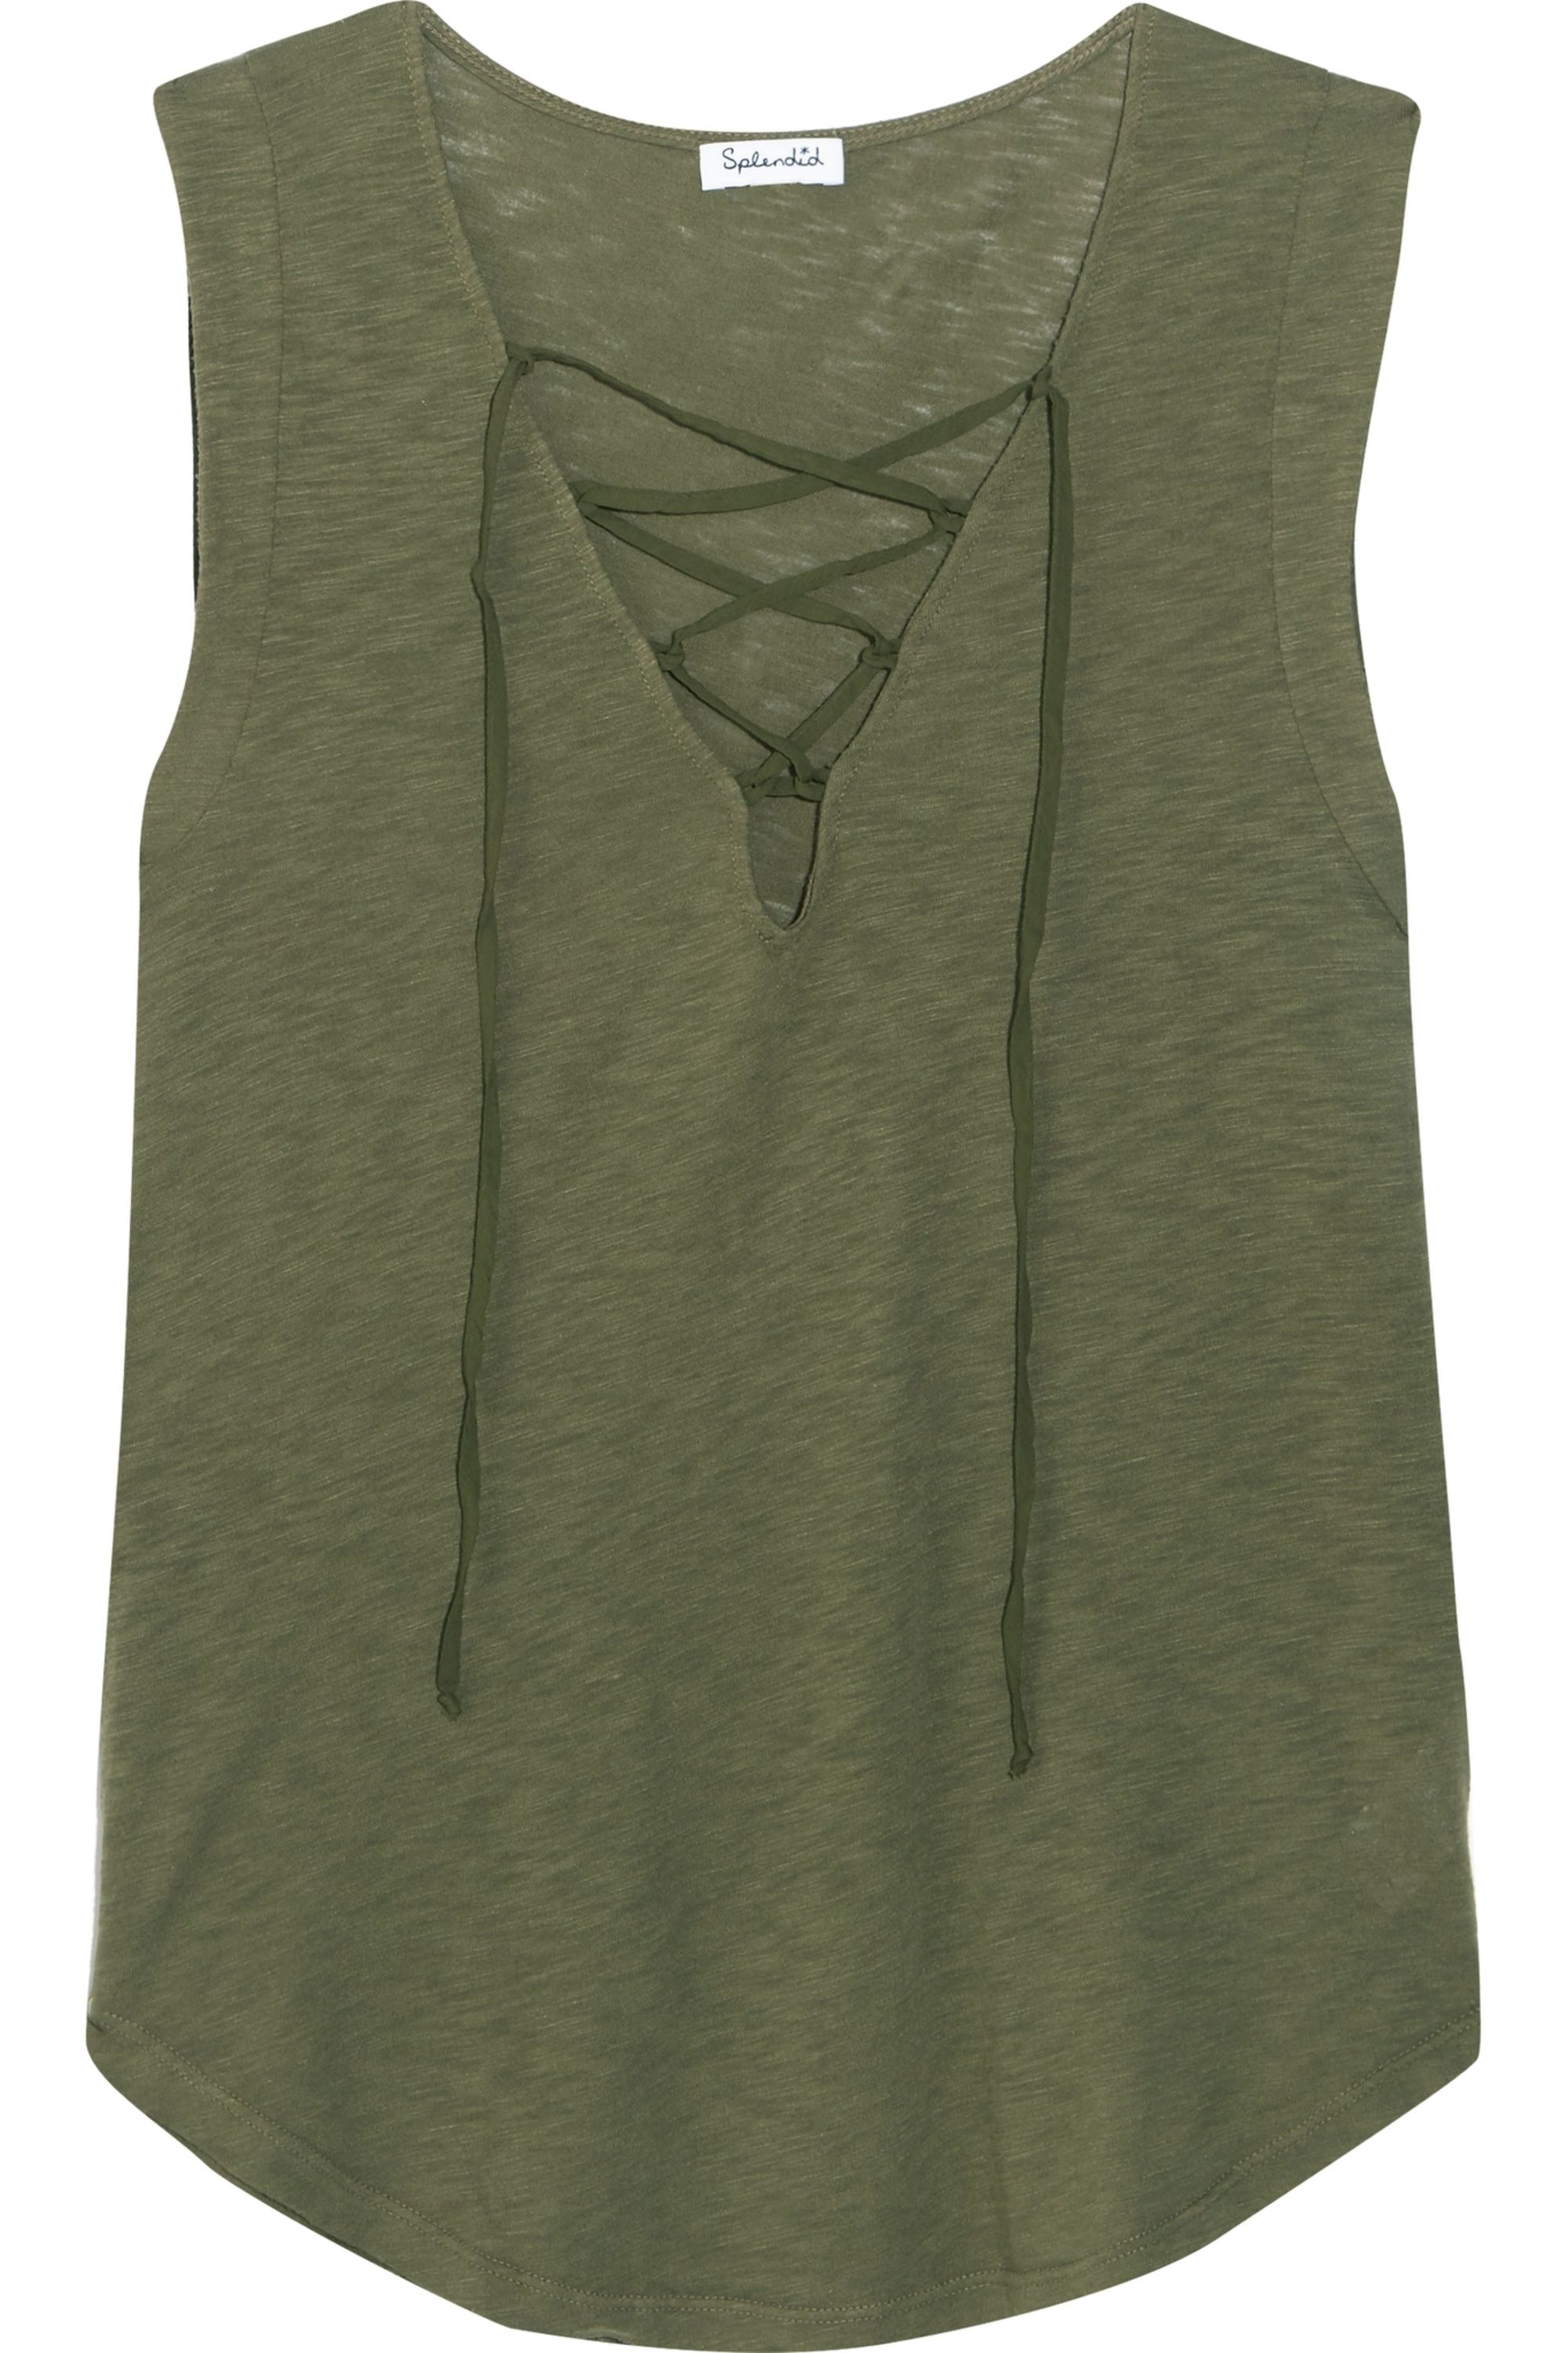 Splendid Lace-up Micro Modal and stretch Supima cotton-blend jersey top